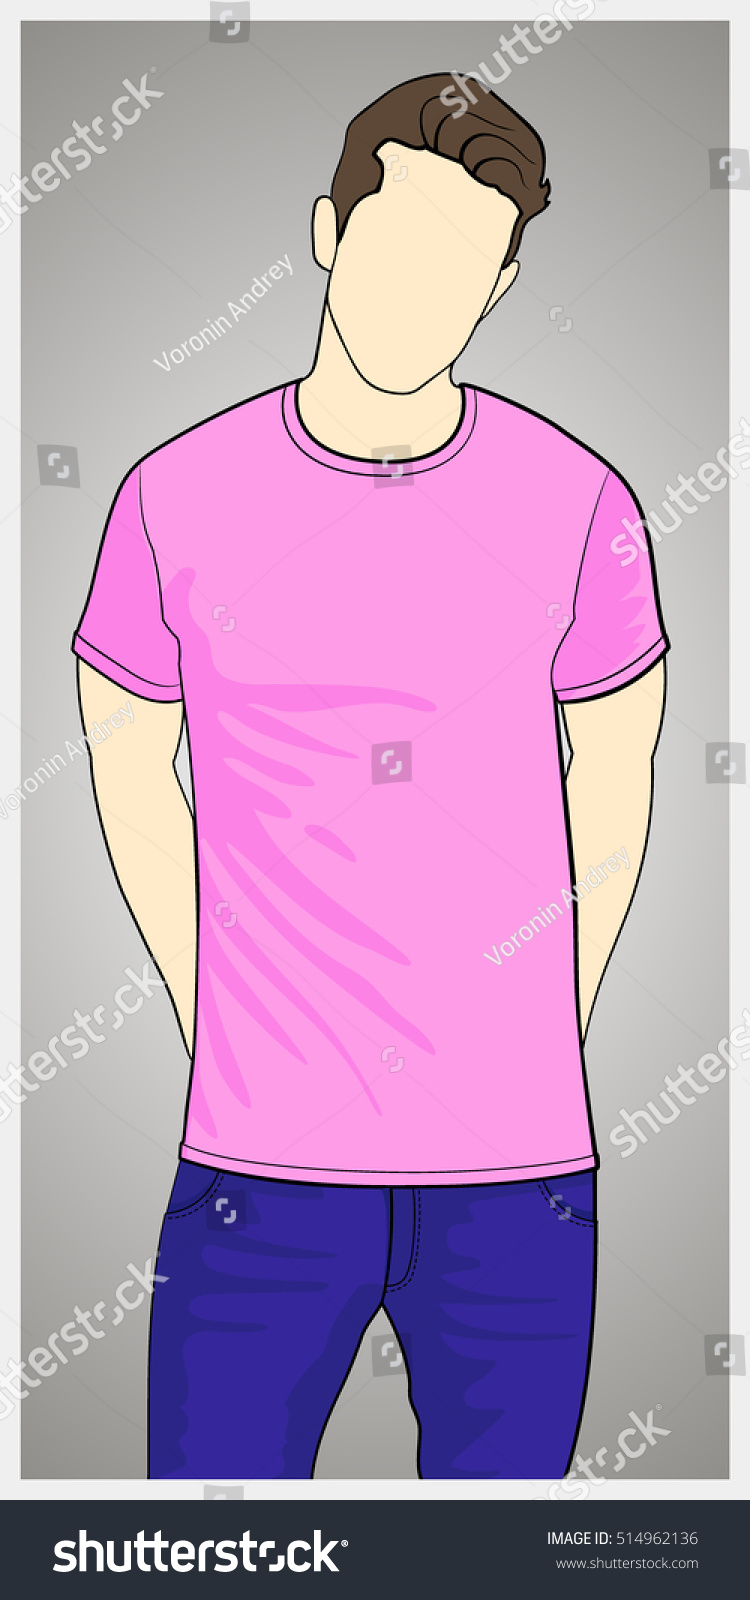 White t shirt eps - T Shirt Template Front View On The Man Man Body Silhouette Pink Color